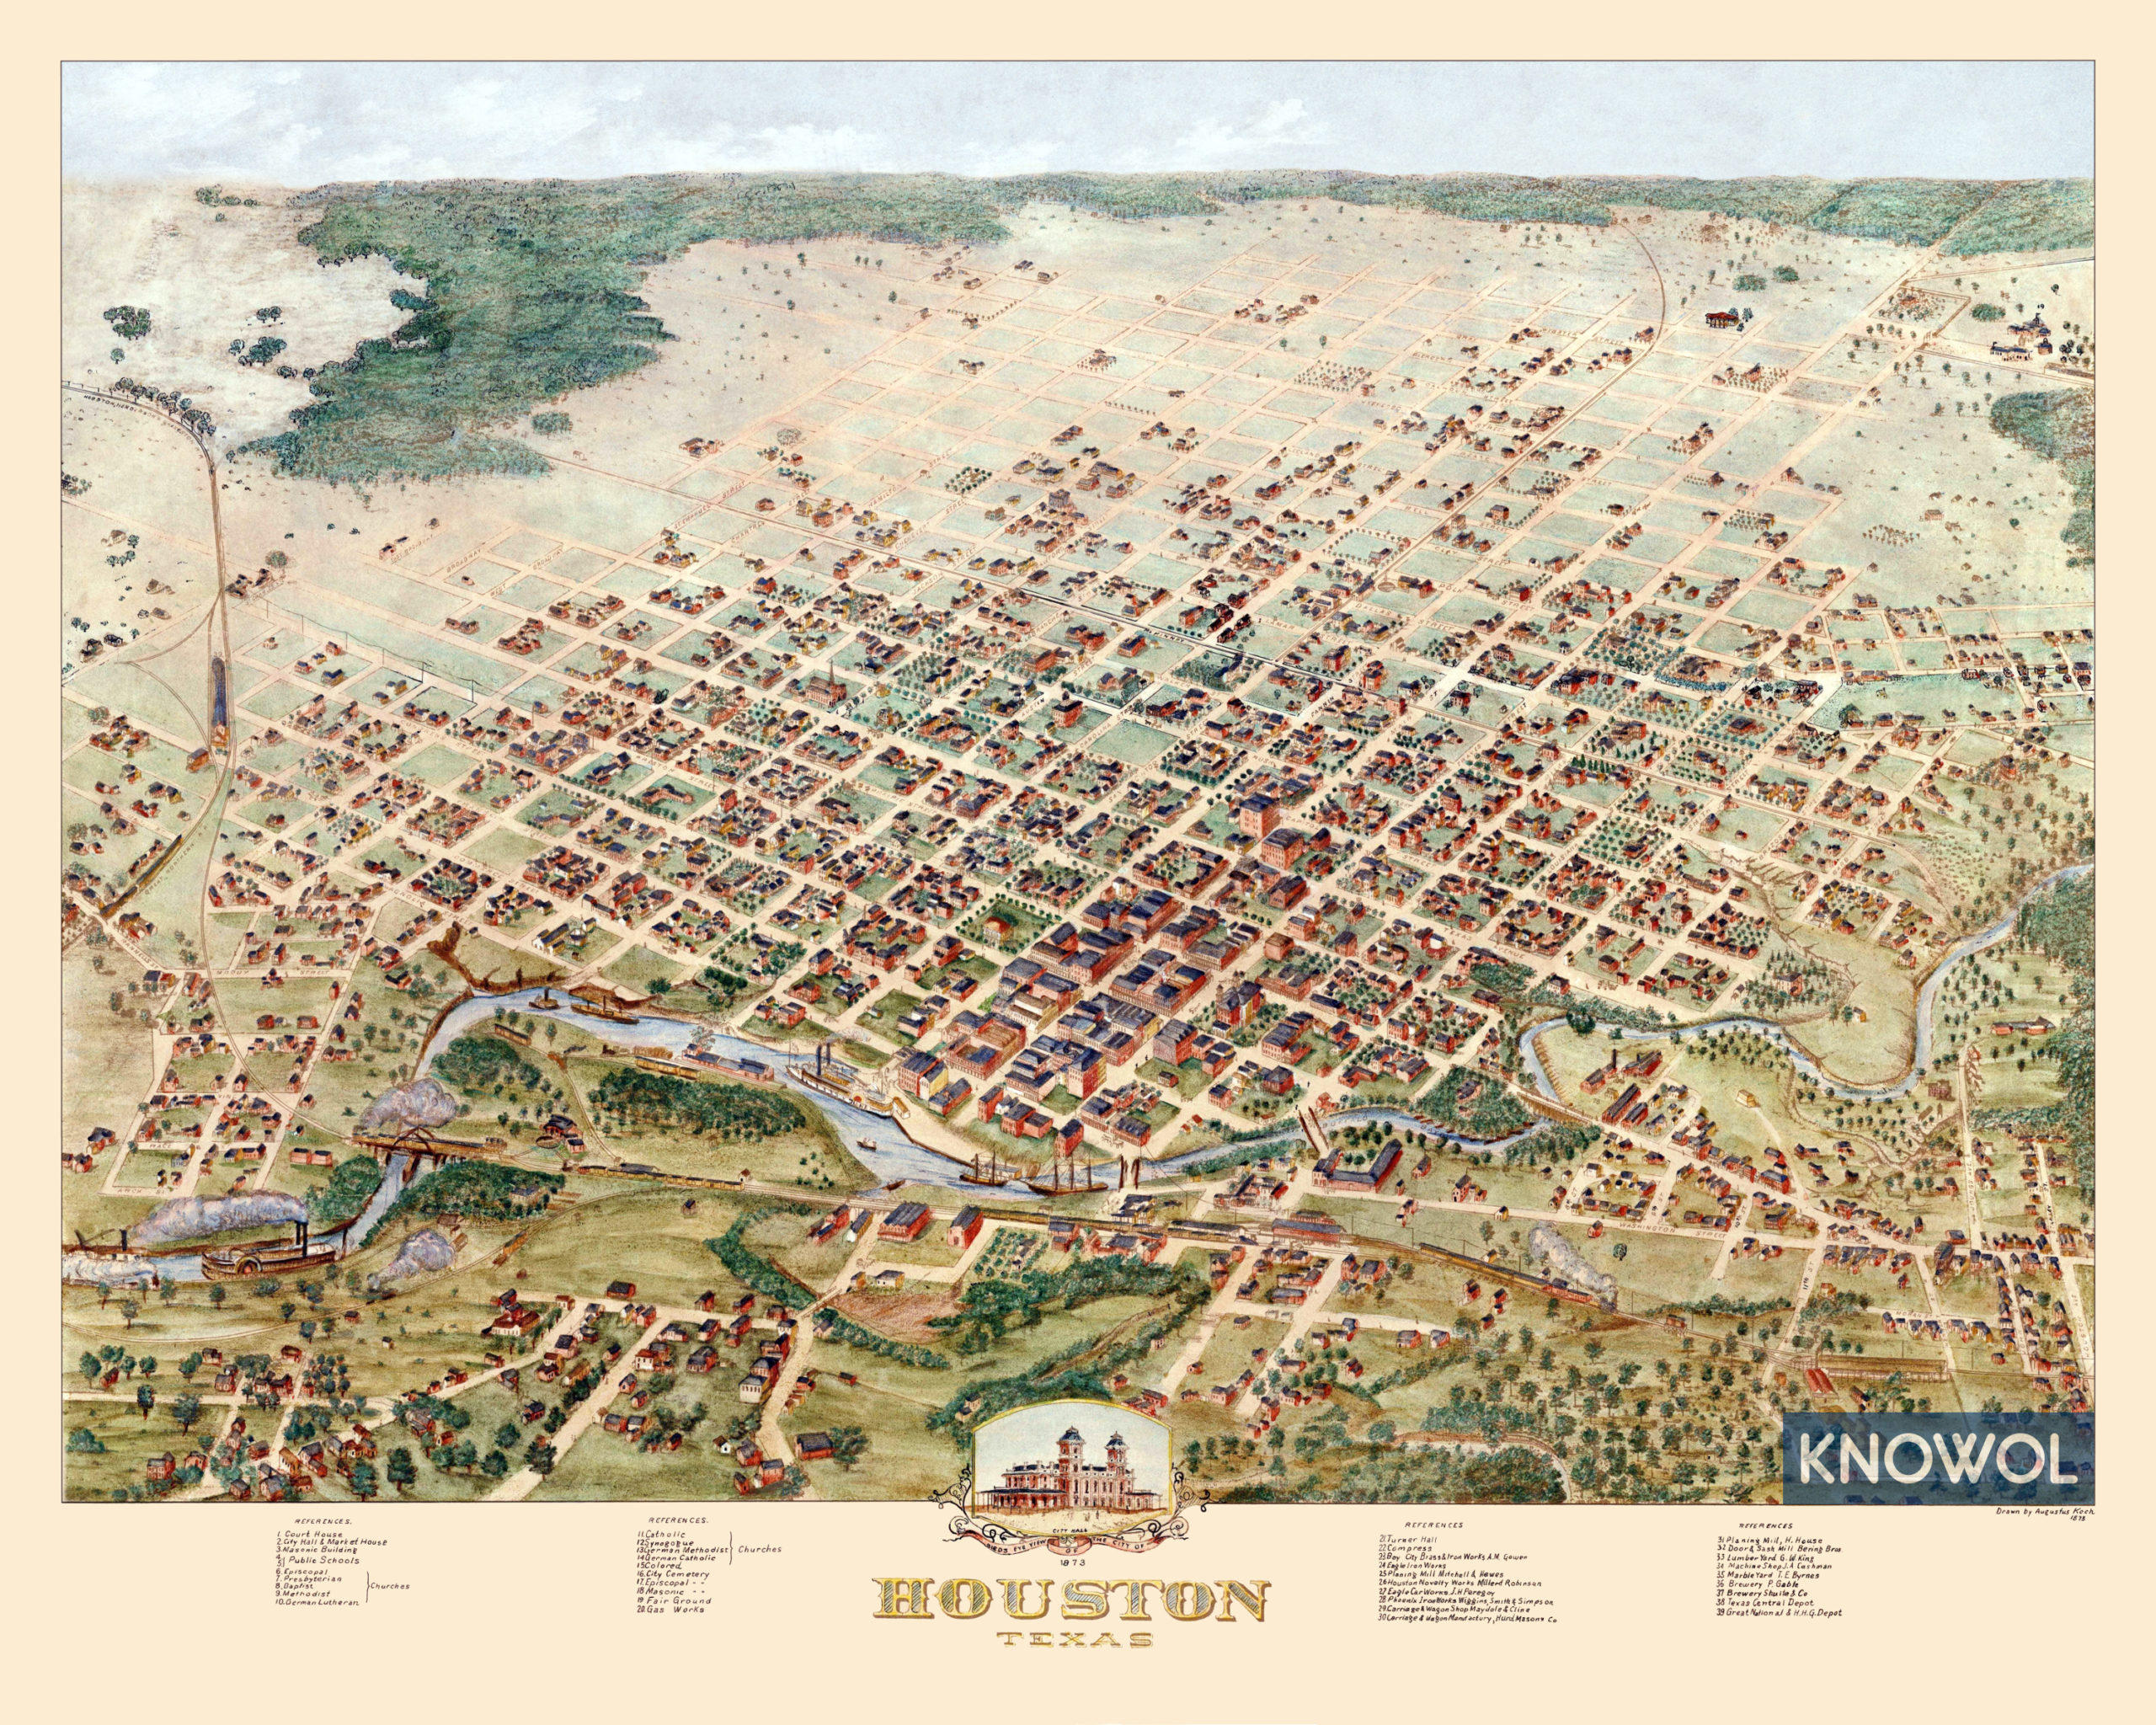 Beautifully detailed map of Houston, Texas from 1873 - KNOWOL